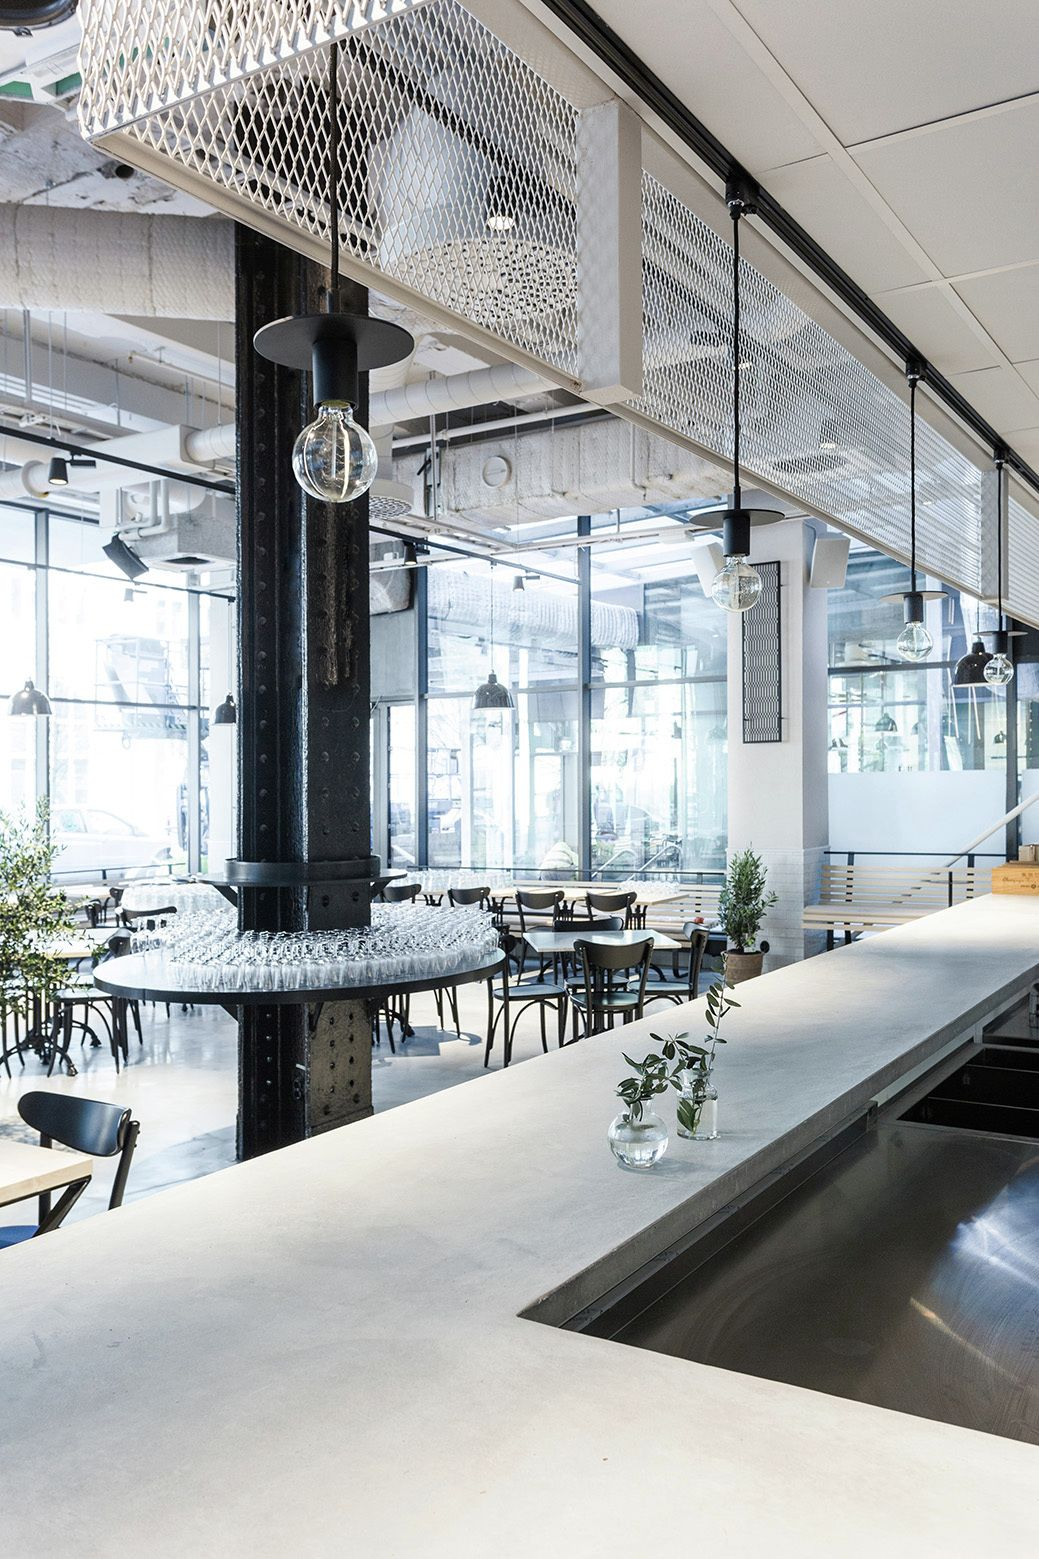 Gallery of Usine Restaurant / Richard Lindvall – 20